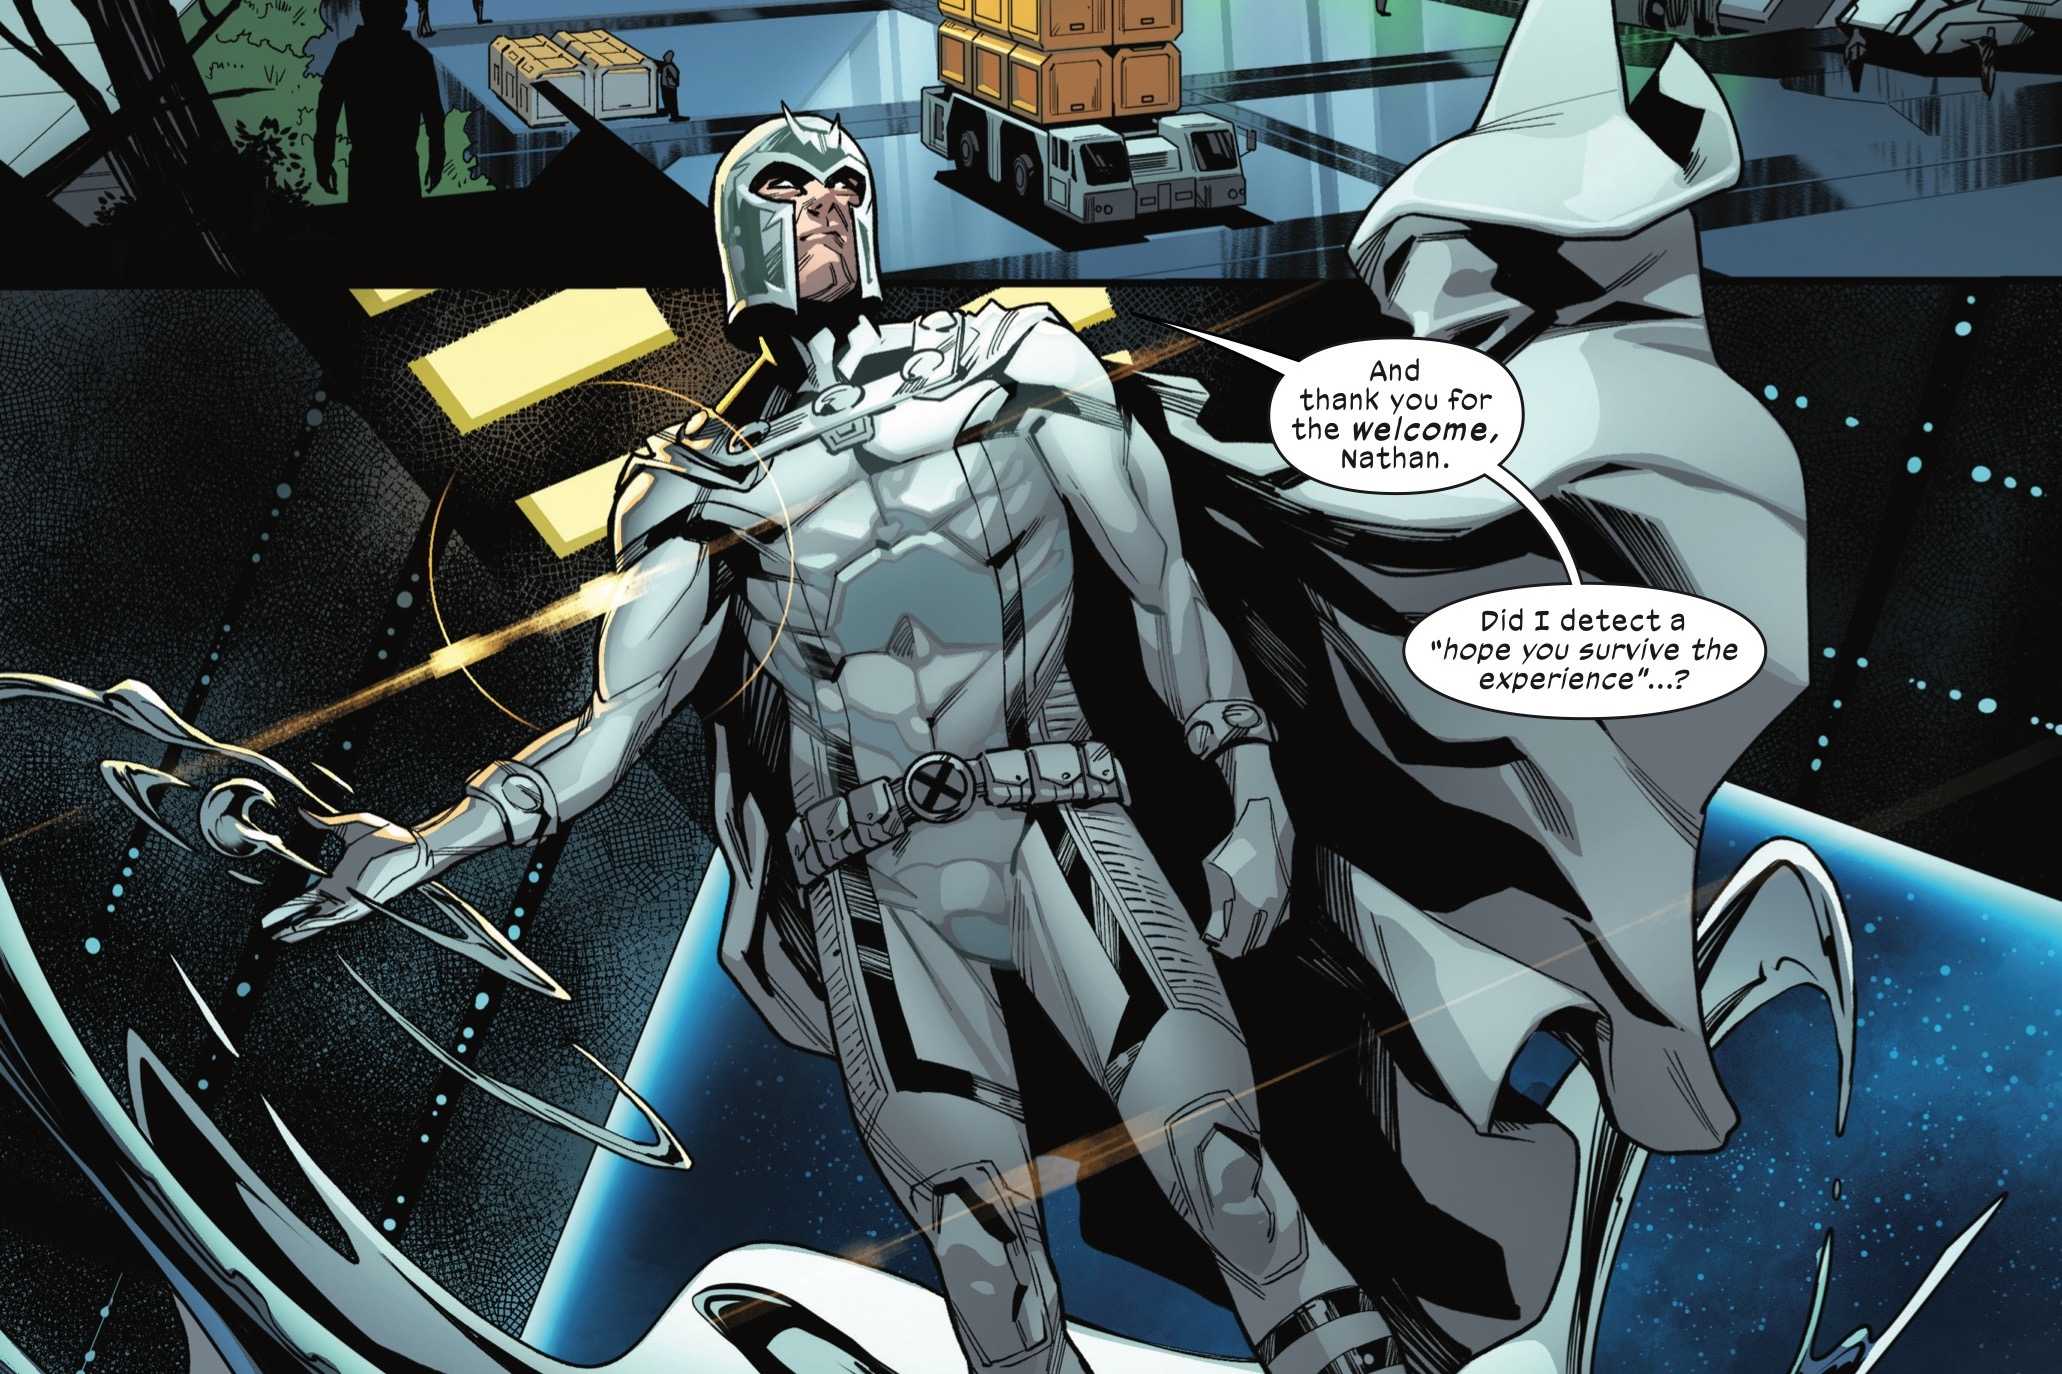 """Magneto, in his white costume, unfurls the metal sphere he used to ascend from earth's surface to the SWORD space station, saying """"And thank you for the welcome, Nathan. Did I detect a 'hope you survive the experience?'"""" in SWORD #1, Marvel Comics (2020)."""